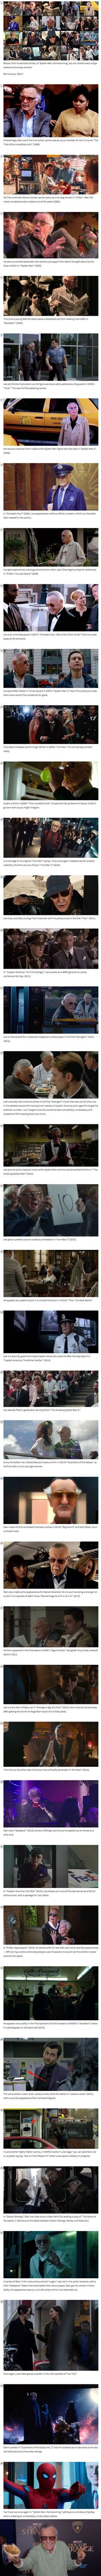 Every Marvel Cameo Stan Lee Has Graced Us With Over The Years